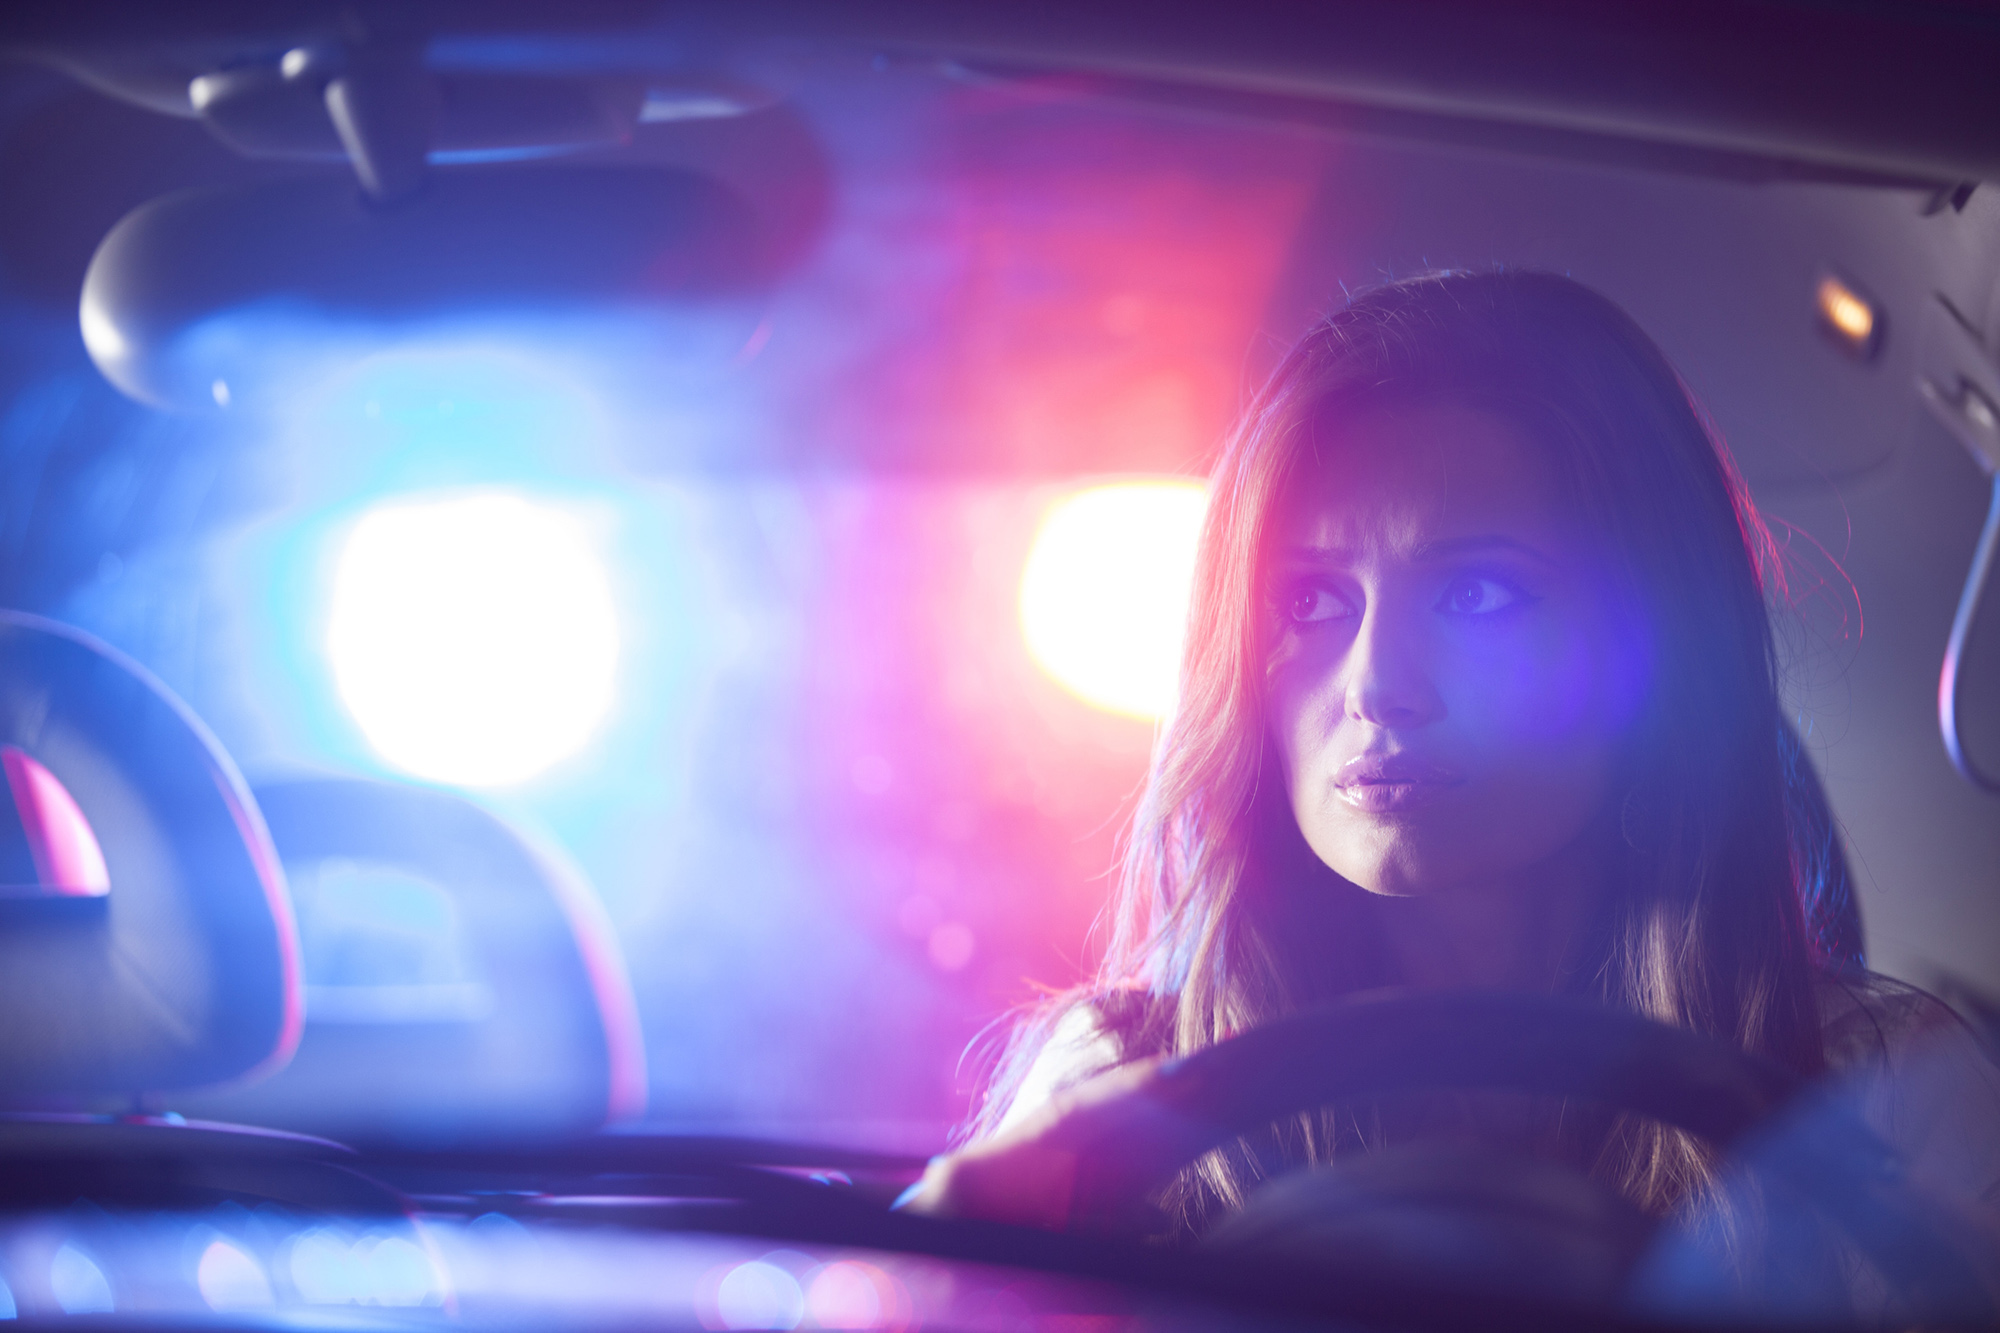 woman getting pulled over and in need of a Personal Injury Attorney & Criminal Defense